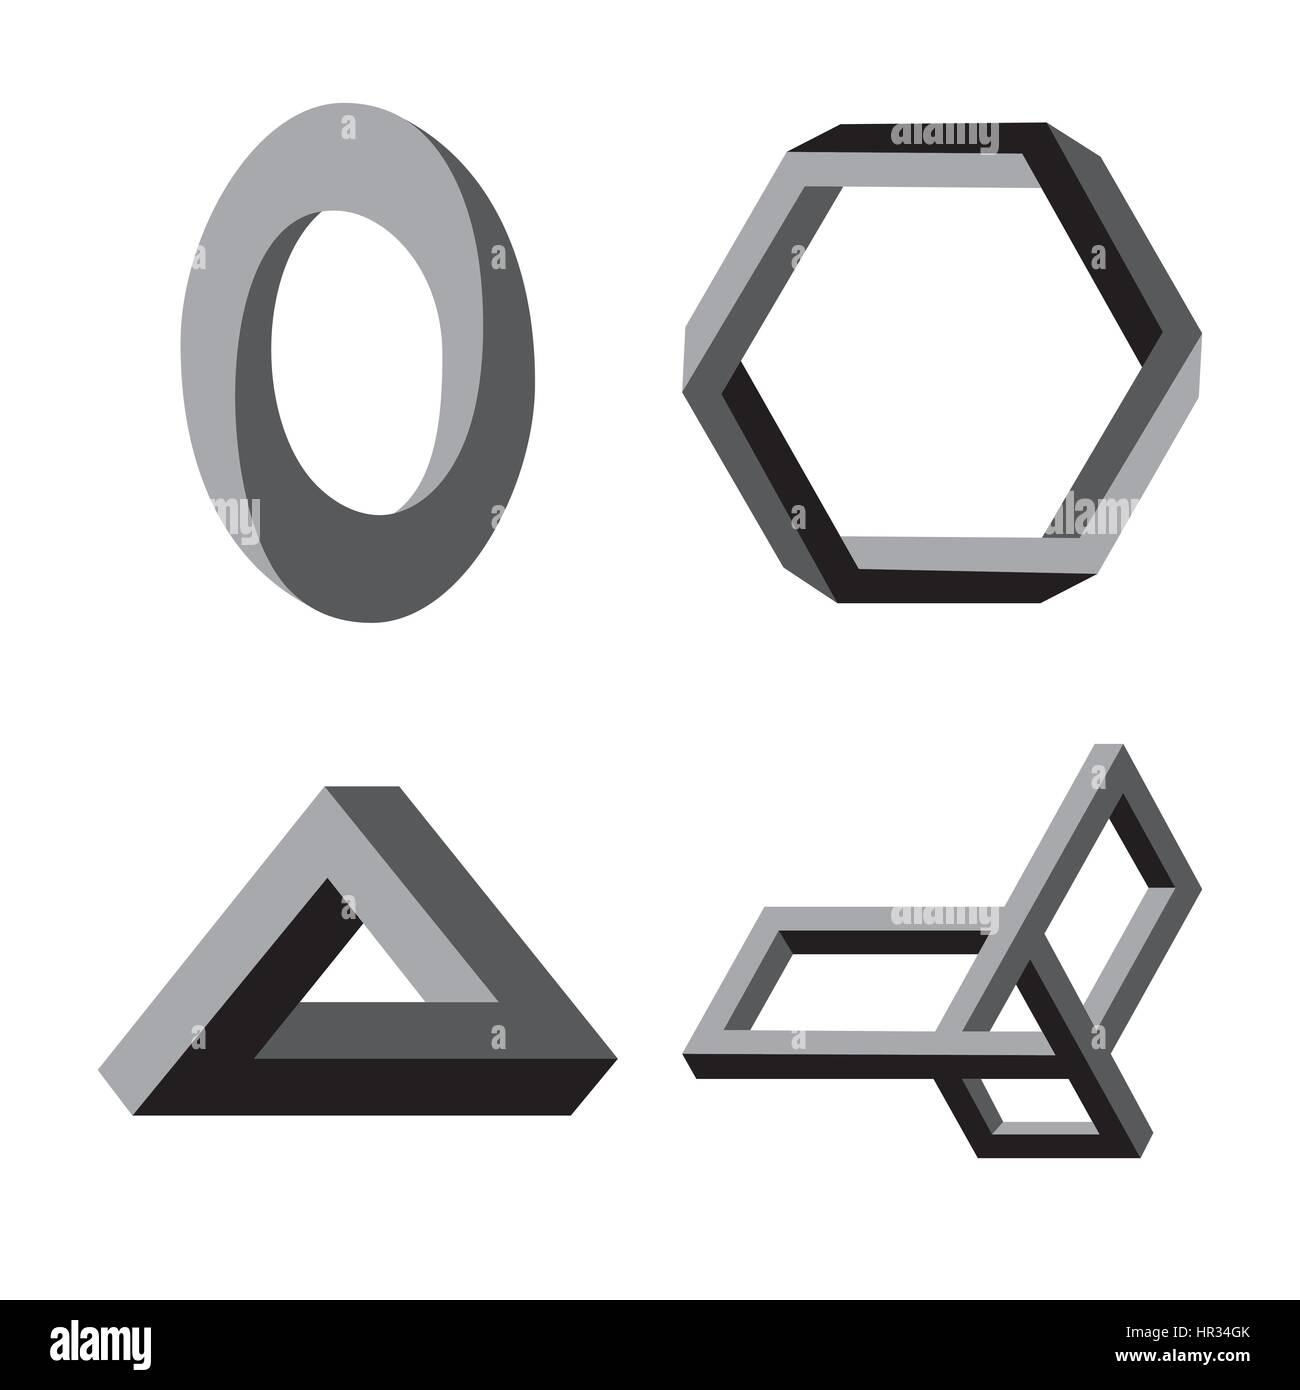 Modern abstract vector logo or element design. Best for identity and logotypes. Simple shape. - Stock Vector